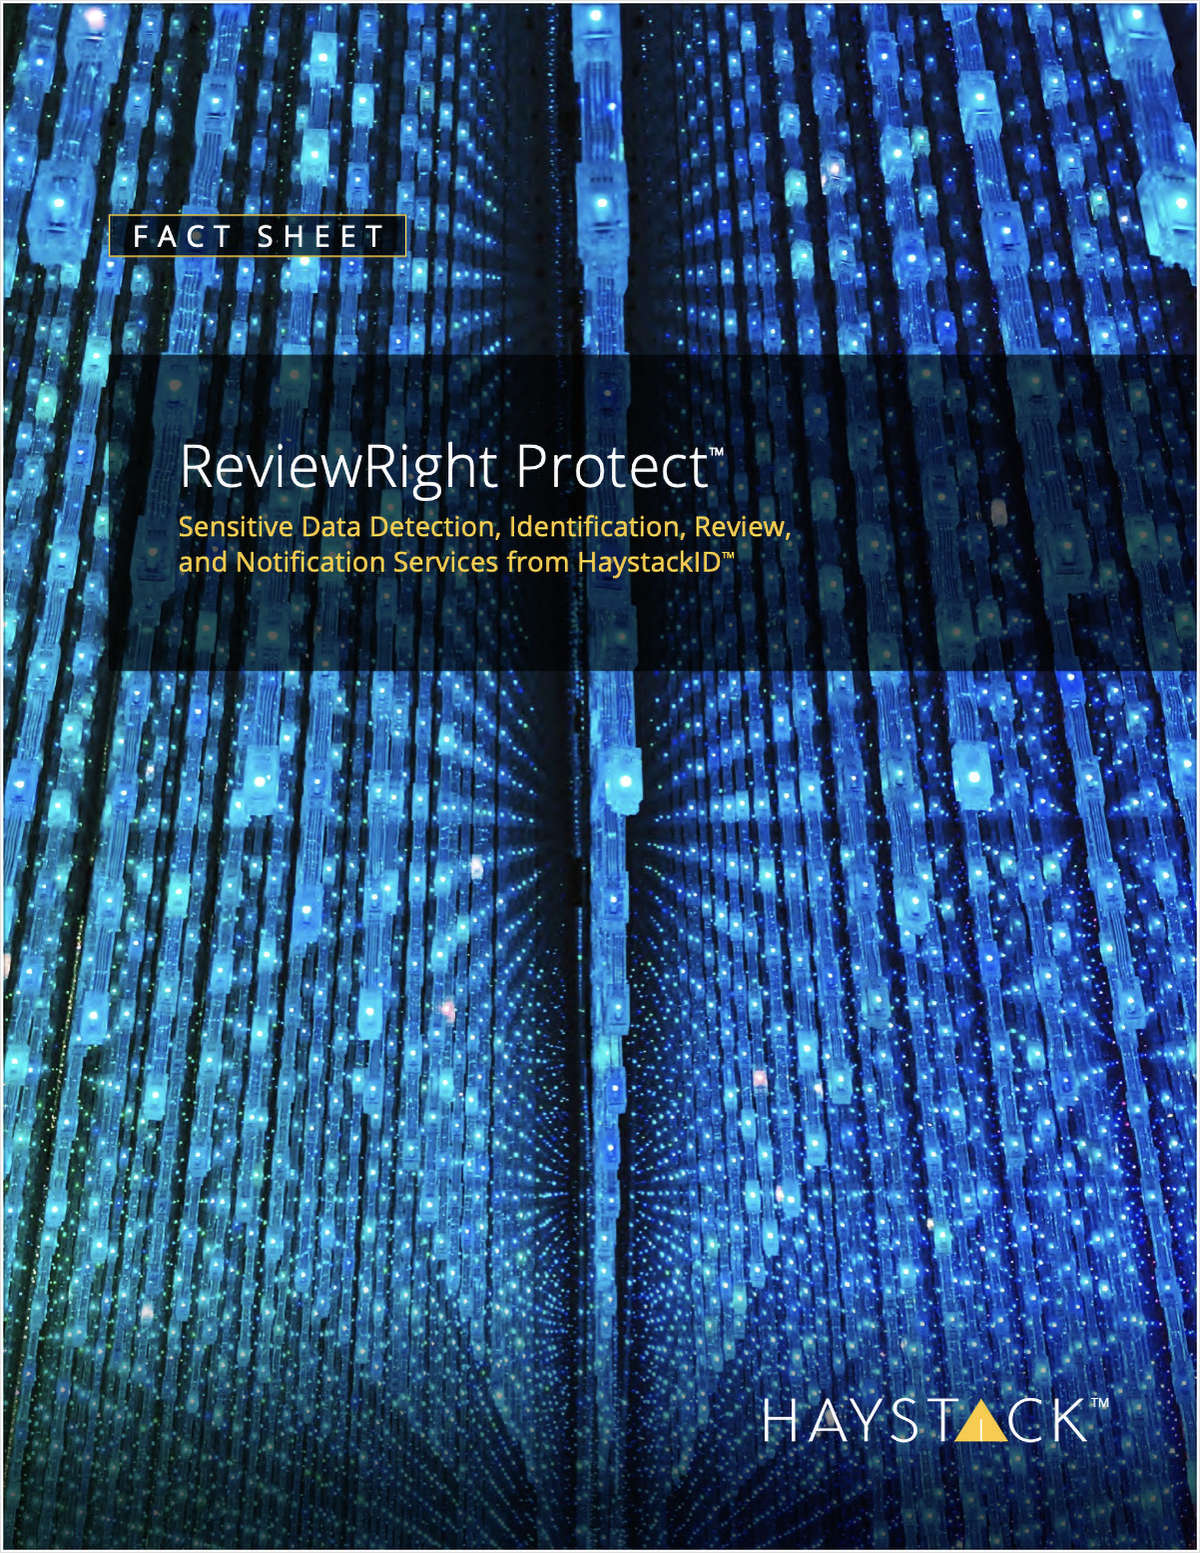 Post-Data Breach Incident Responses: Sensitive Data Discovery and Review with ReviewRight Protect™